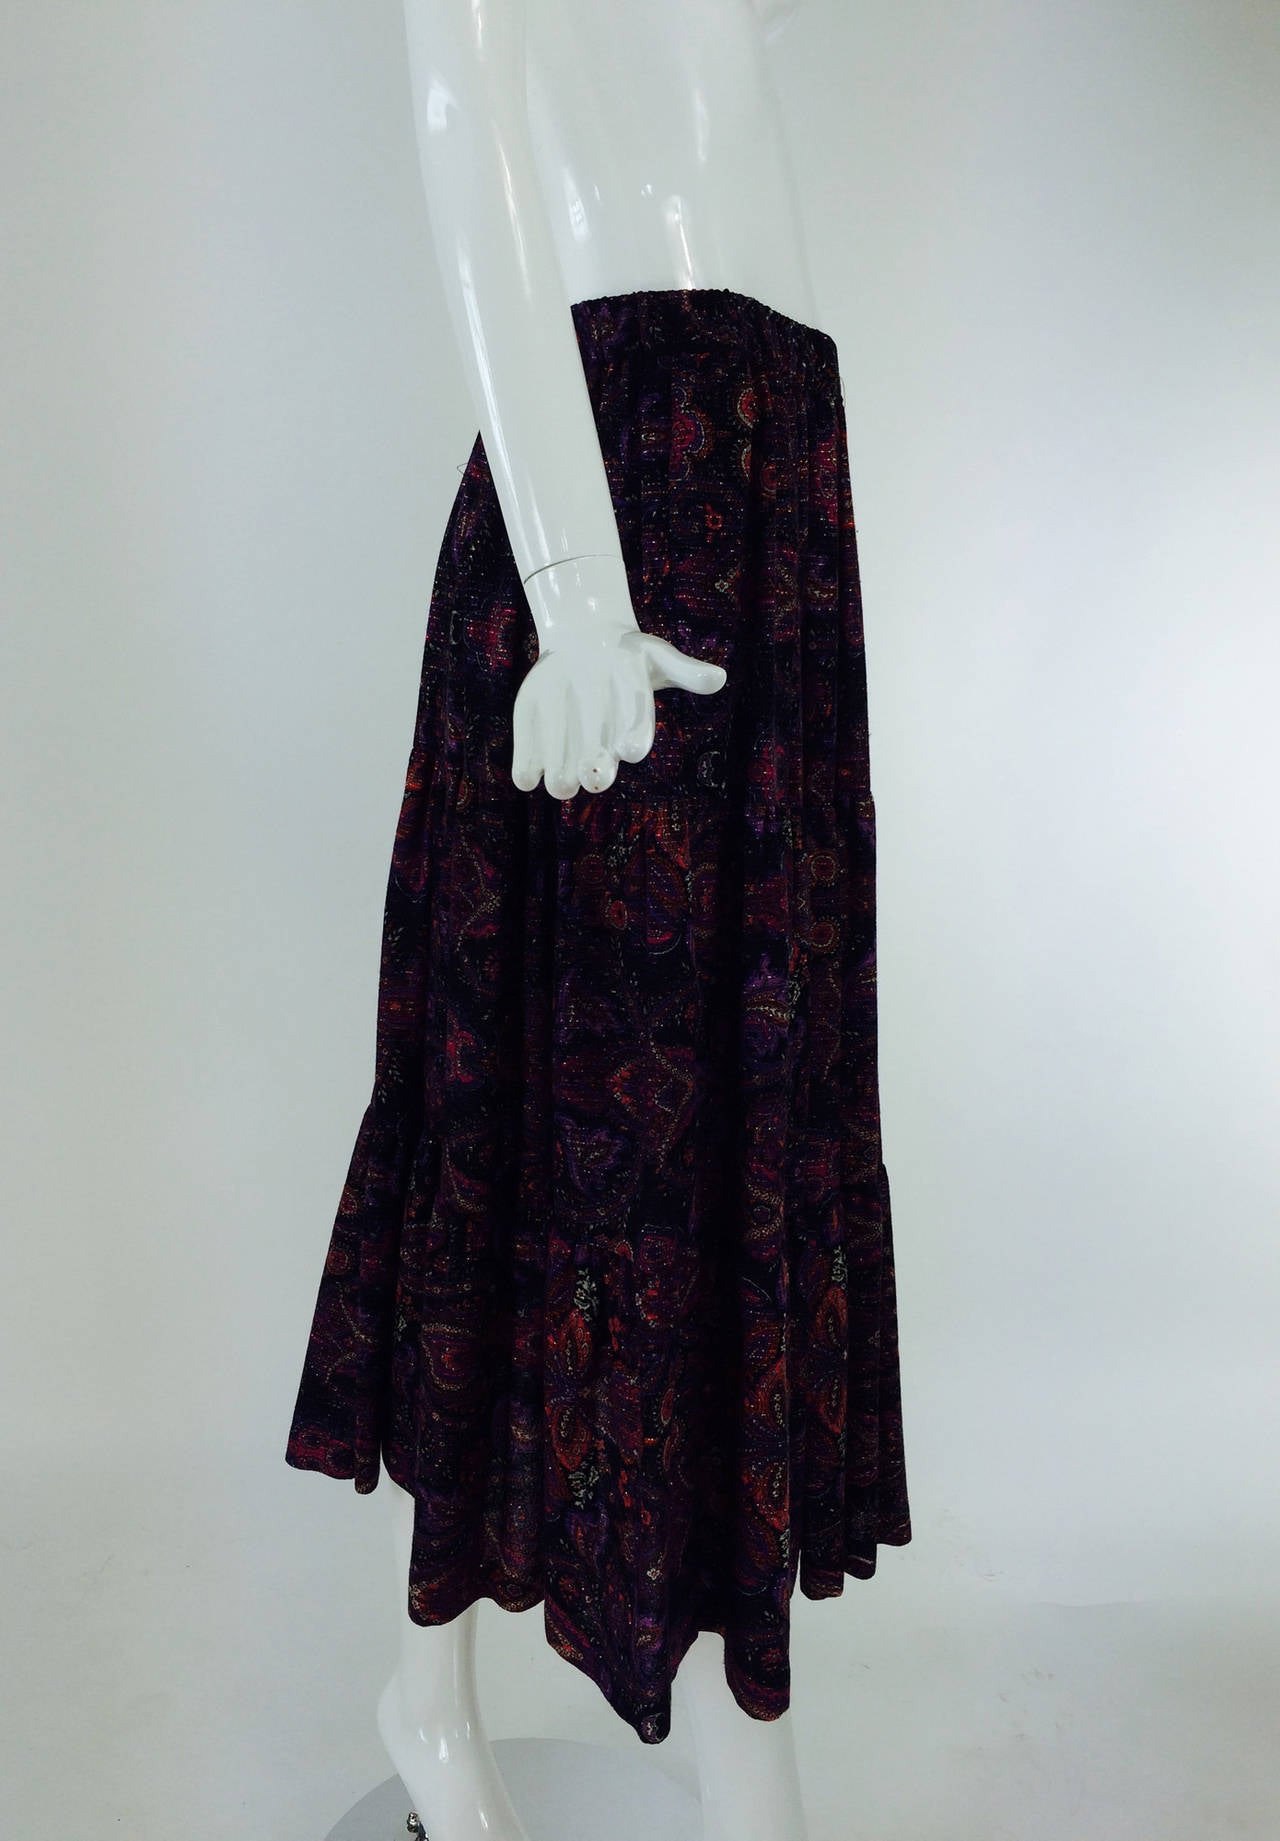 Yves St Laurent YSL Rive Gauche metallic paisley tiered gypsy skirt 1970s For Sale 5